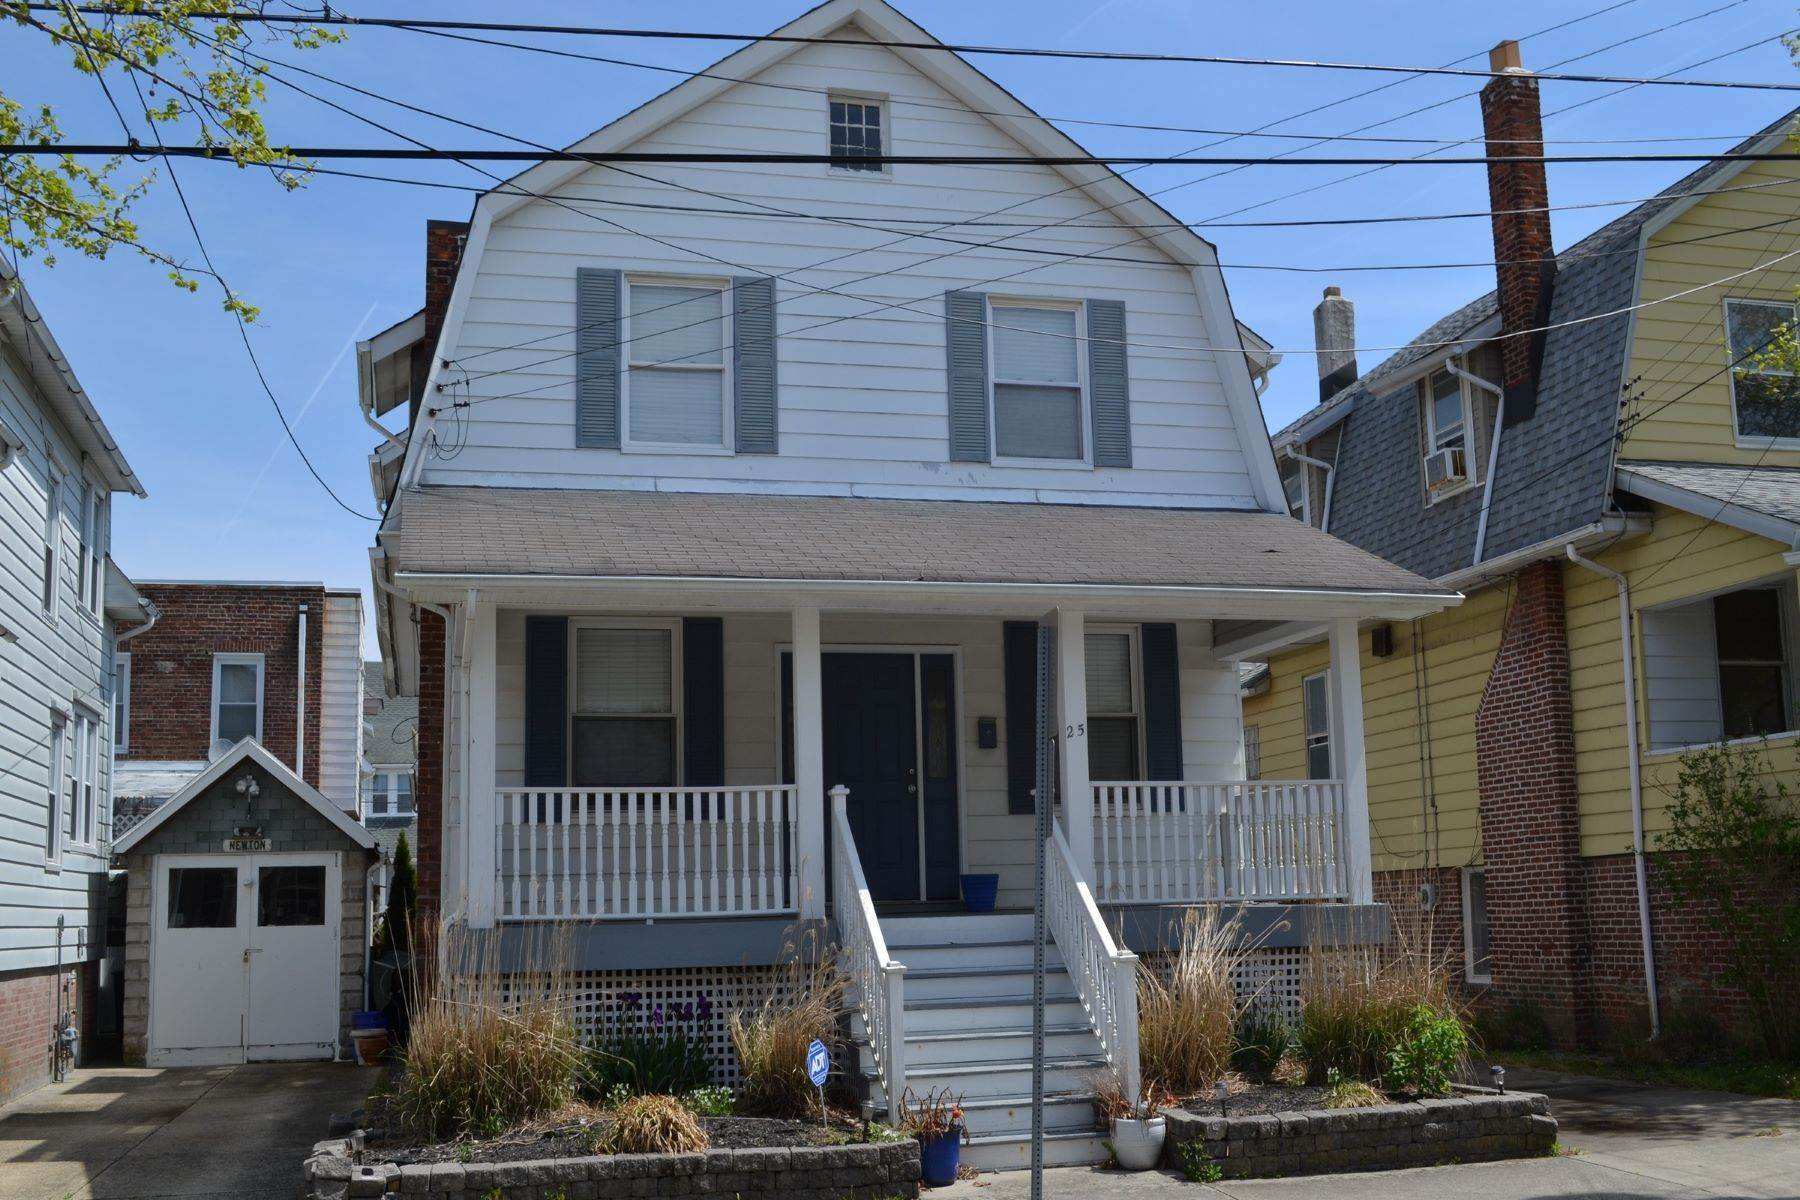 Single Family Homes at 25 N Newton Ave, Full Summer, Atlantic City, New Jersey 08401 United States